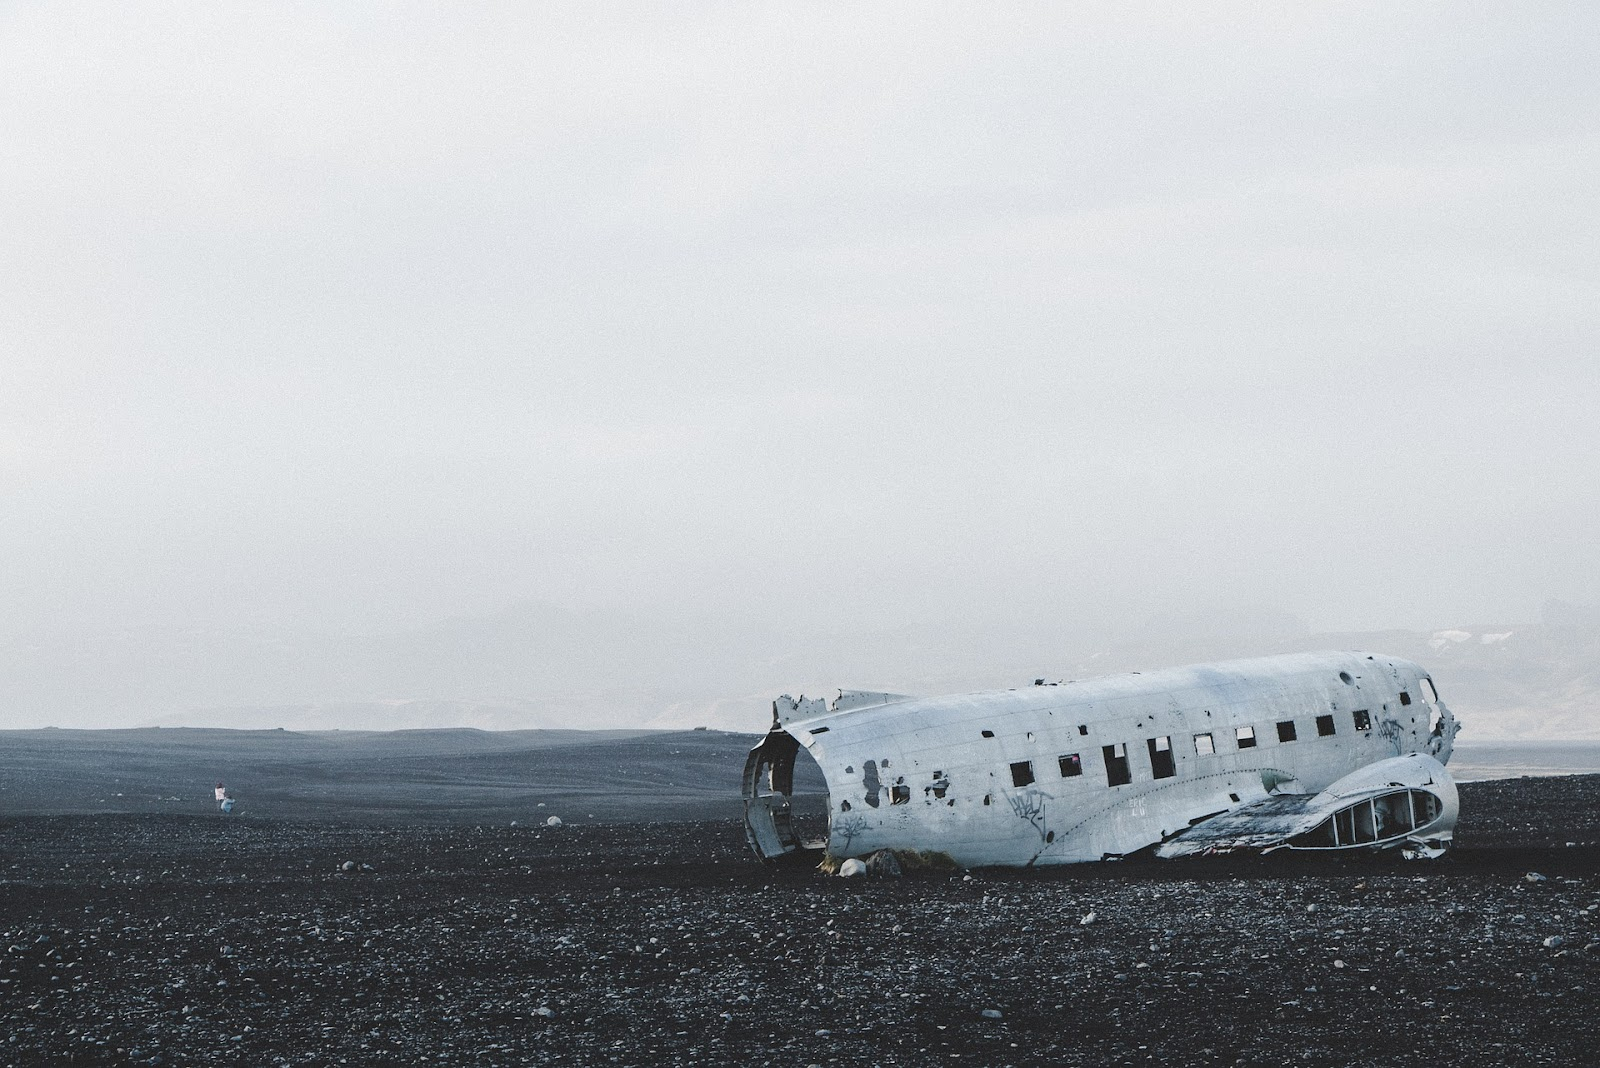 dc-3 plane wreck tourist attraction on black pebble beach seen on a misty day in iceland